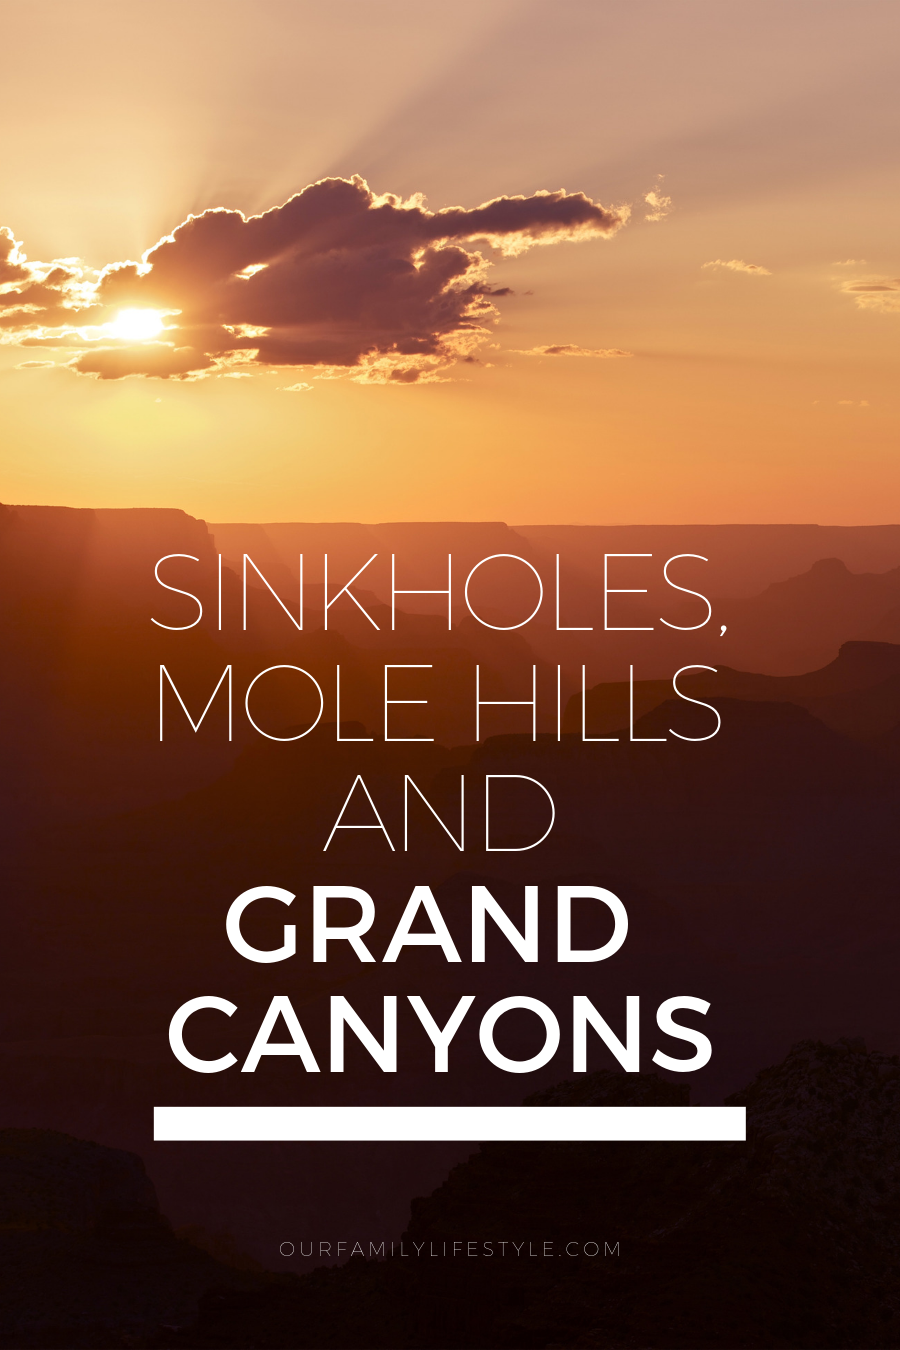 Sinkholes, Mole Hills and Grand Canyons